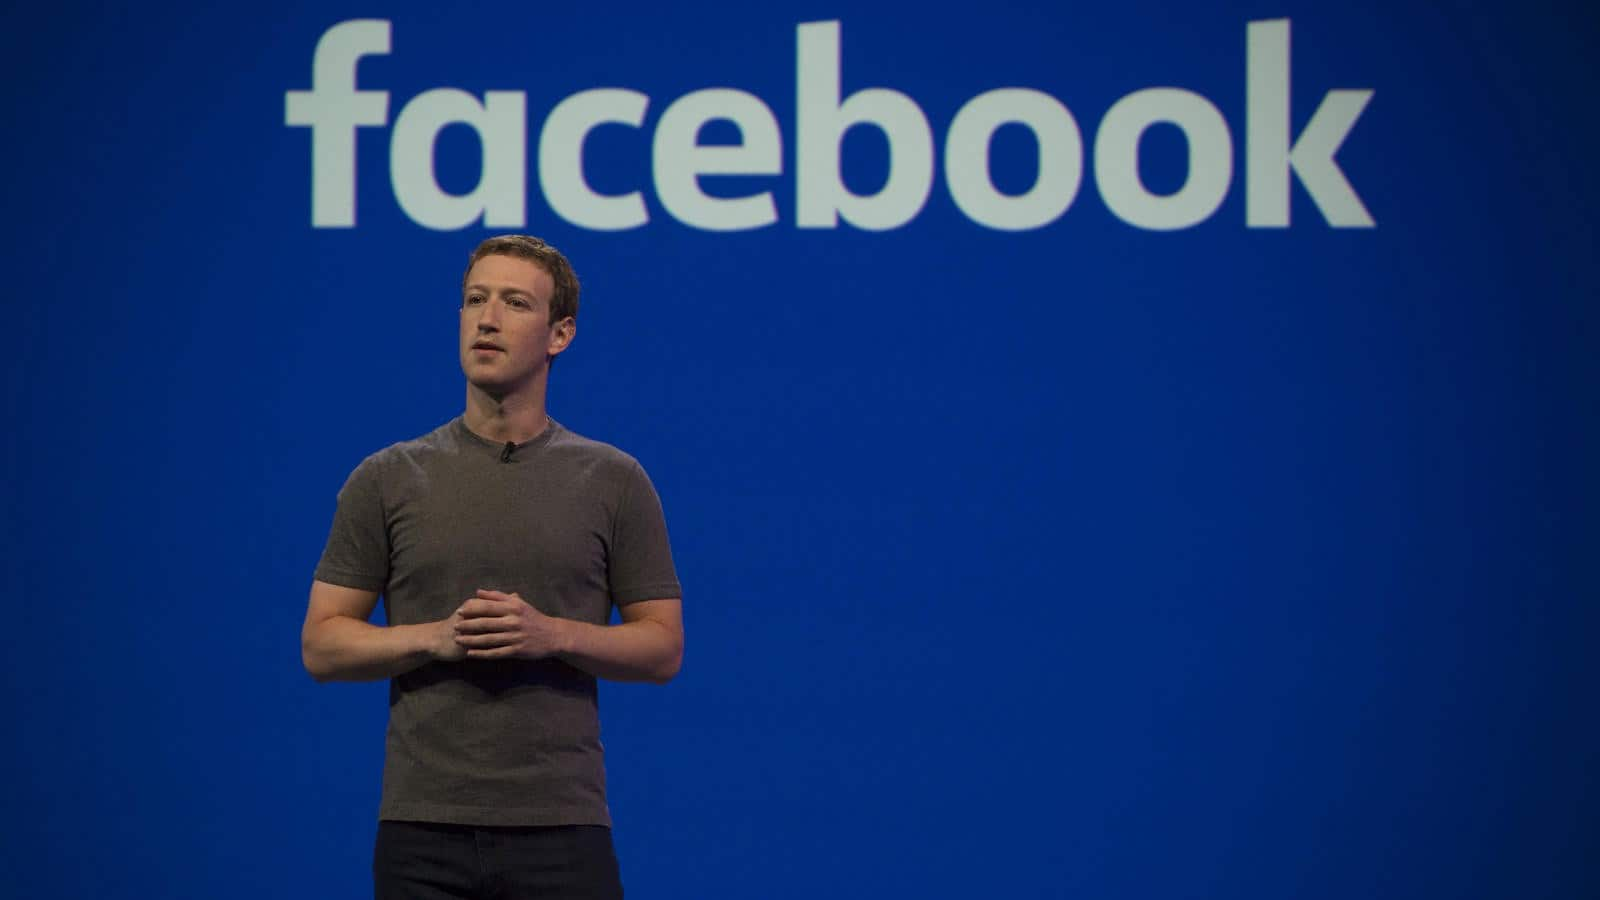 Facebook Blocks Myanmar Military, Ban to Extend on Instagram As Well